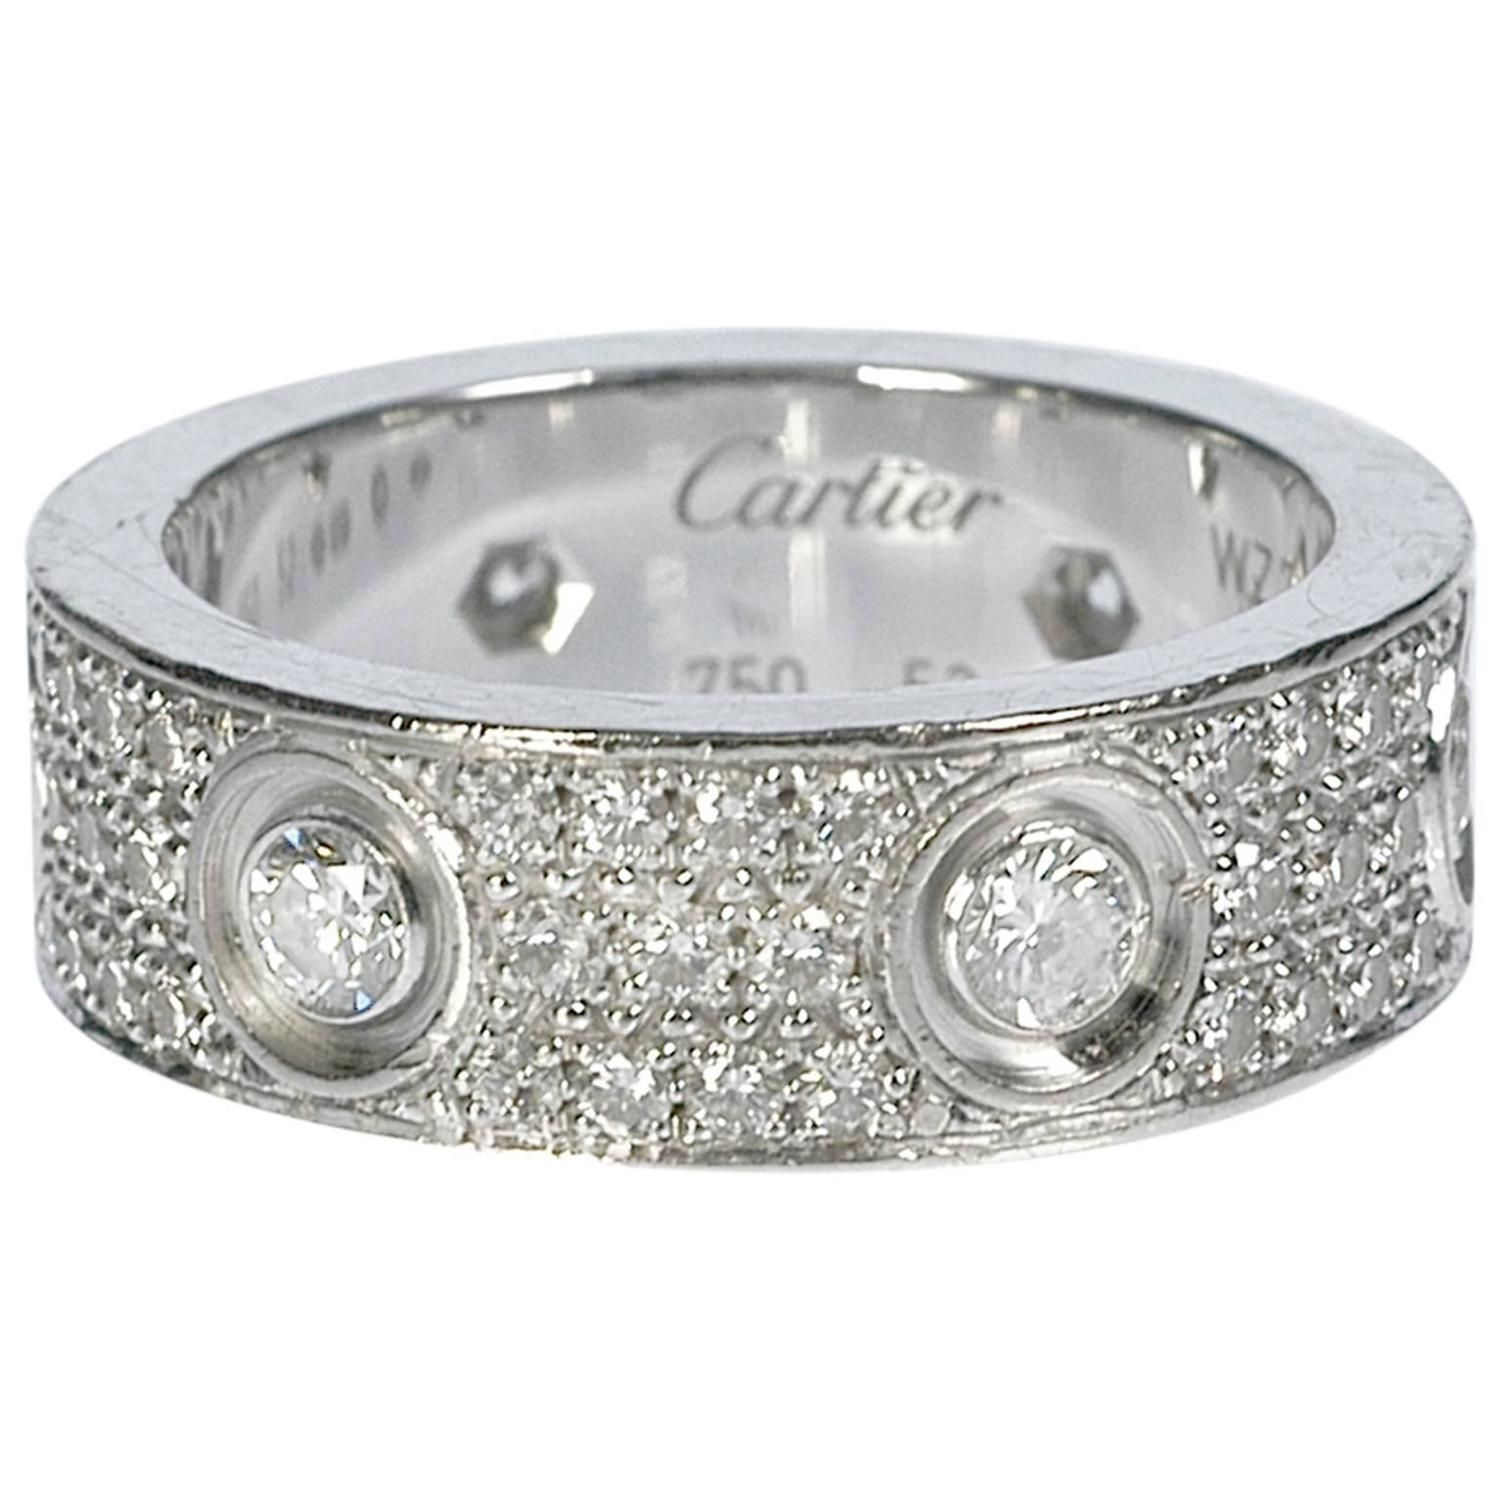 Cartier Diamond Gold Love Wedding Band Ring From a